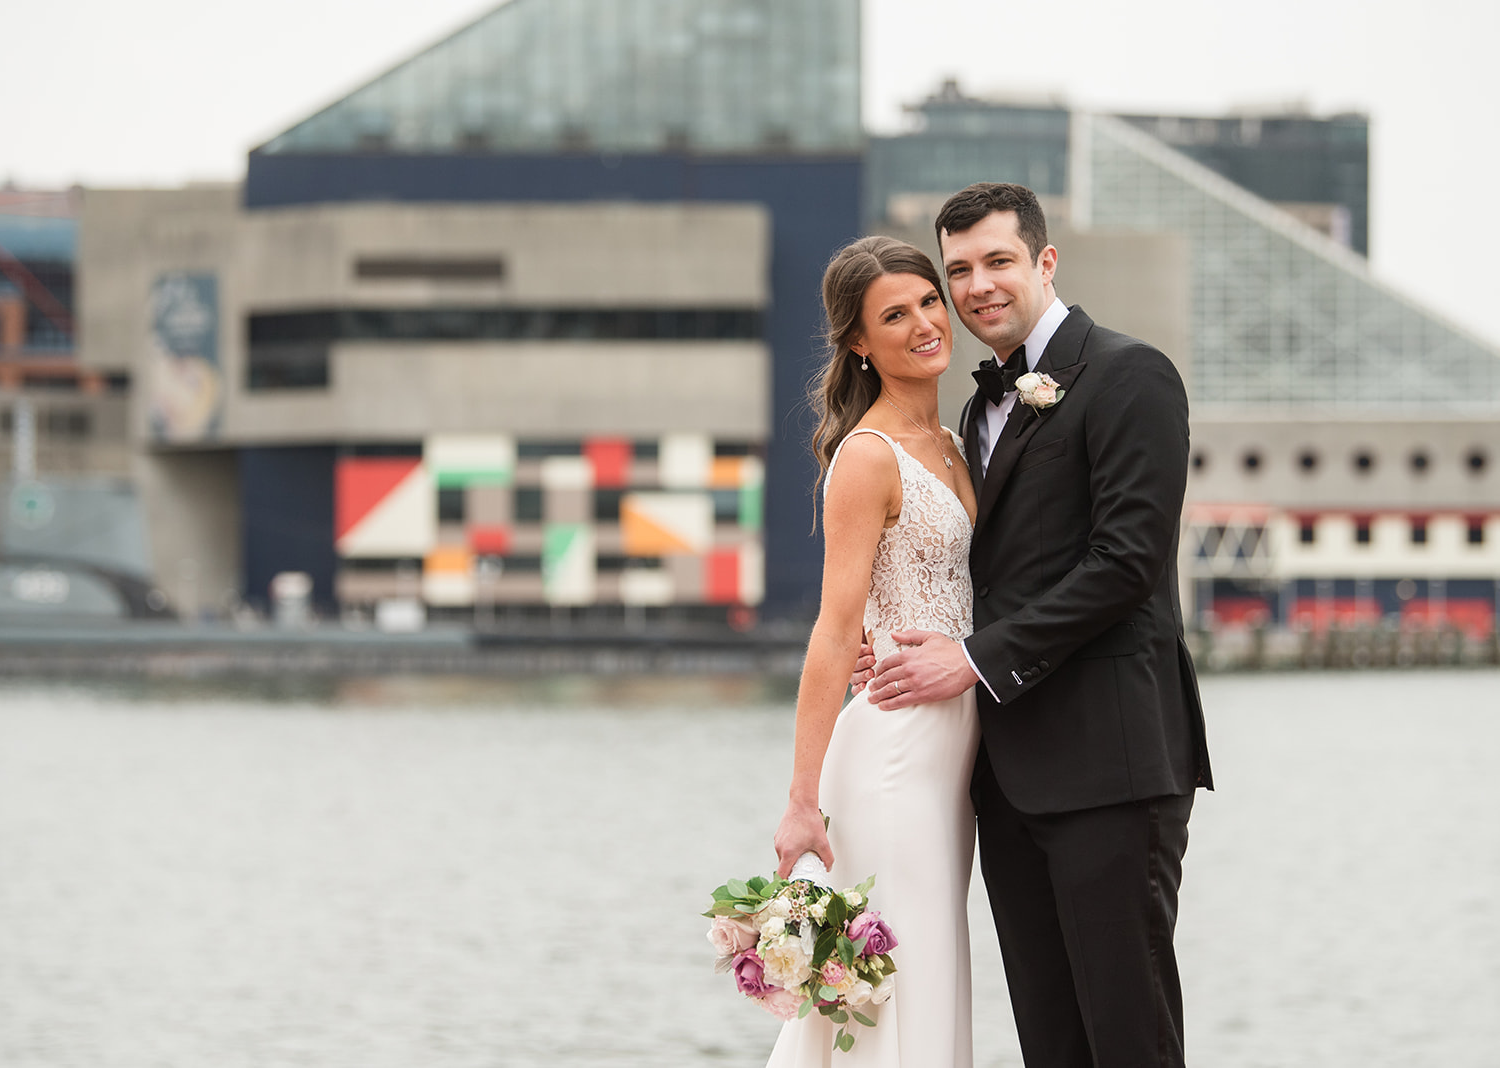 bride and groom wedding day portraits in front of a lake